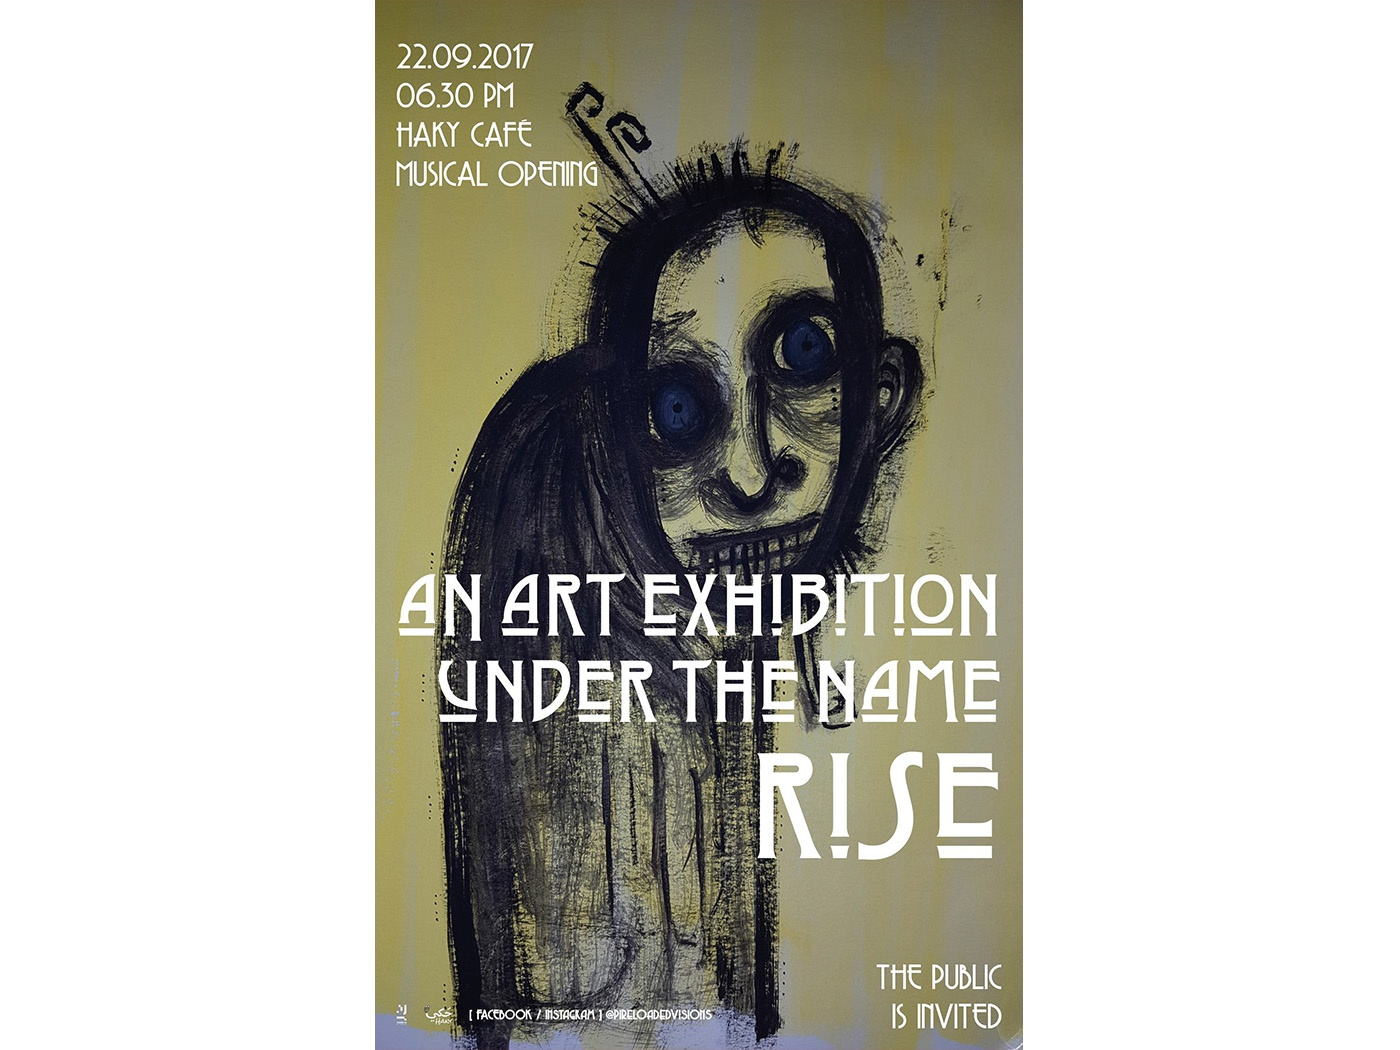 RISE Exhibition - Poster IV rise painting exhibition drawing artistic artist art syria music poster design graphic graphic design